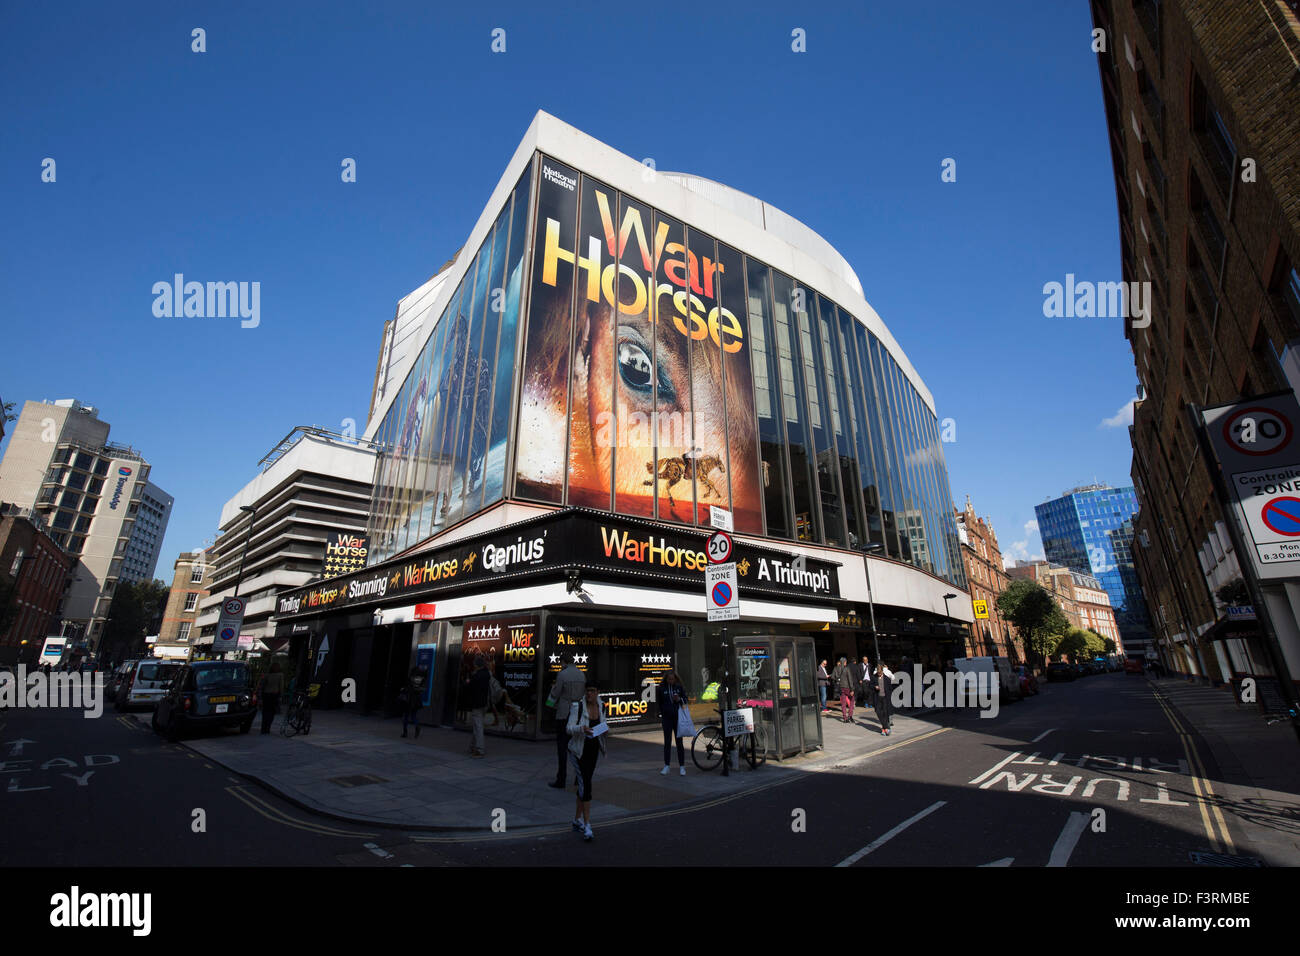 National Theatre's production of War Horse playing at the New London Theatre, Drury Lane Stock Photo